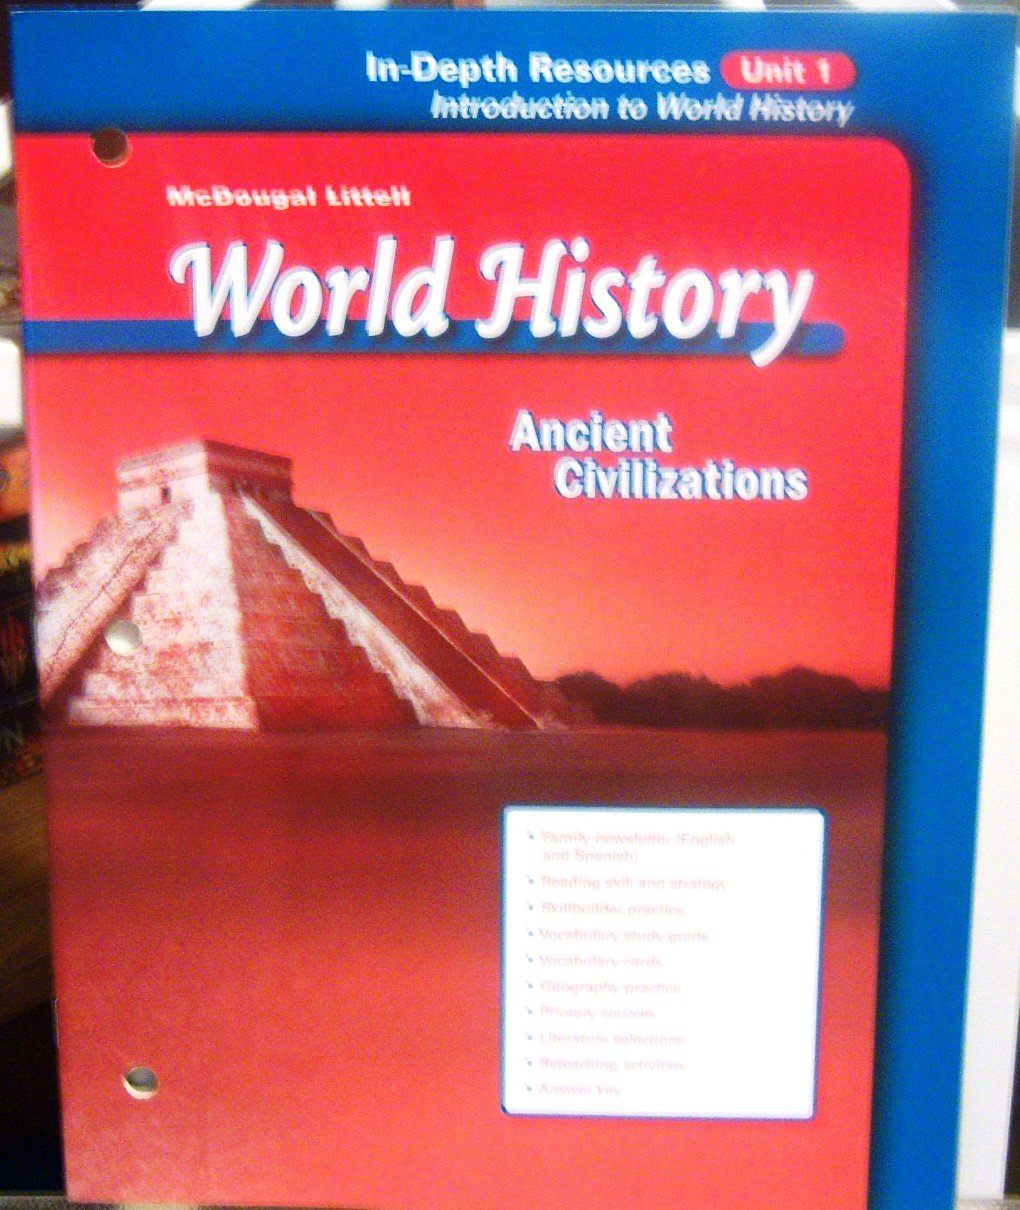 Read Online World History Ancient Civilizations In-Depth Resources Unit 1 Introduction to World History pdf epub